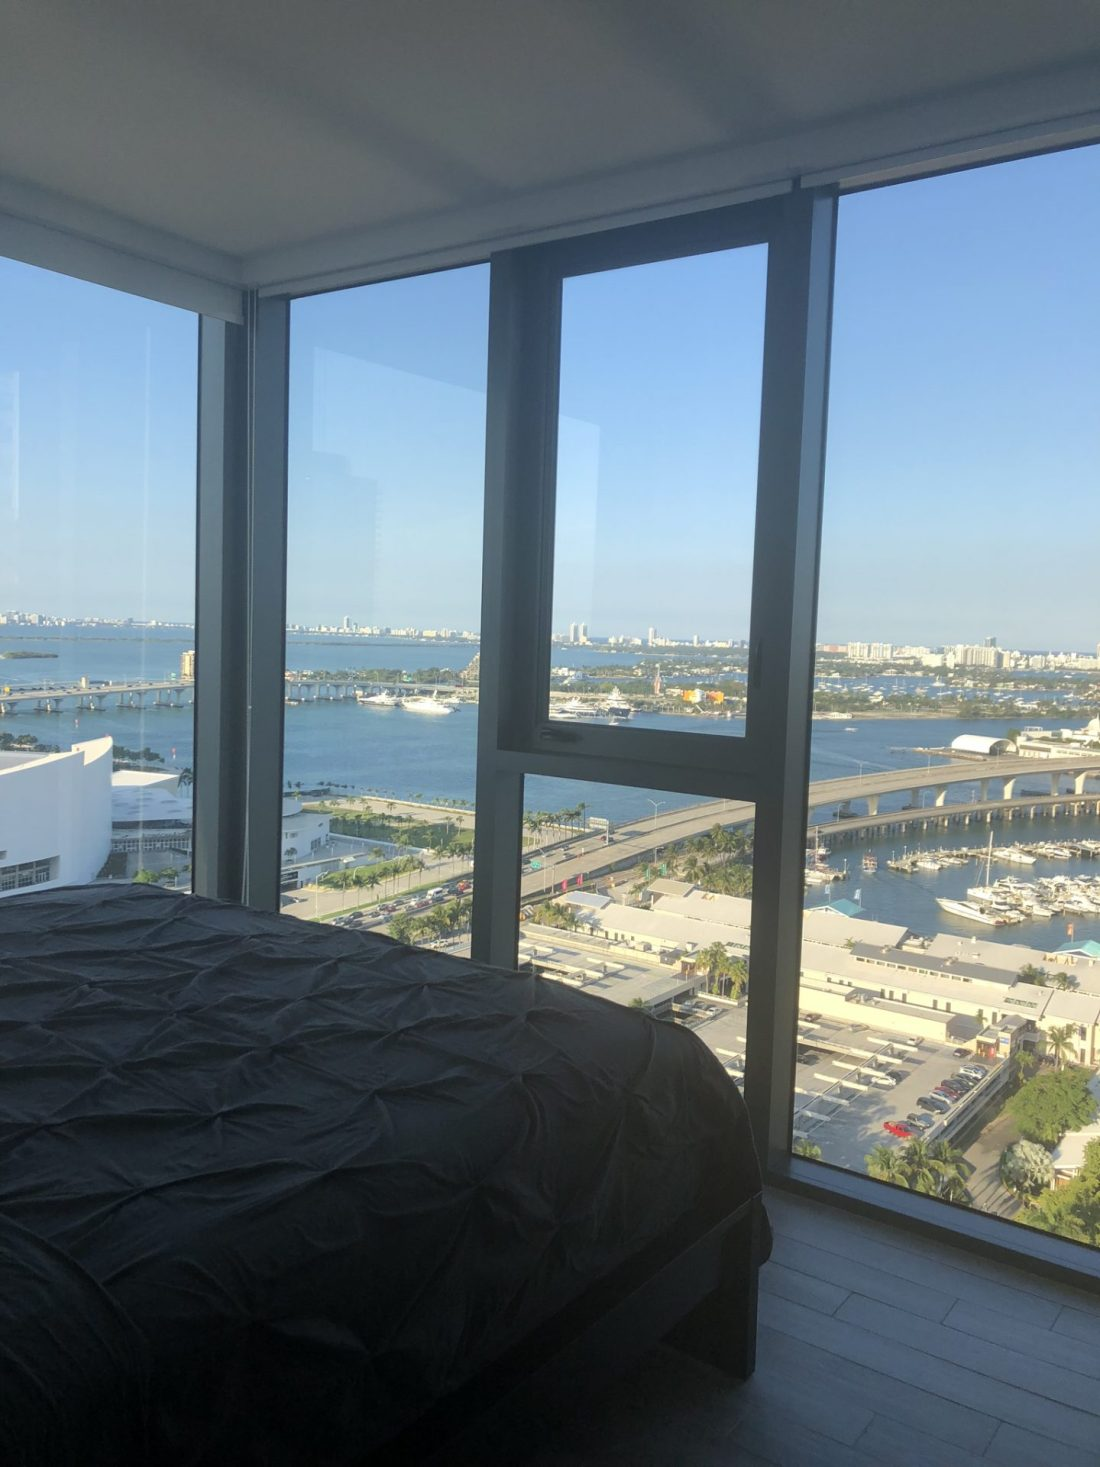 Views of Miami from the bedroom